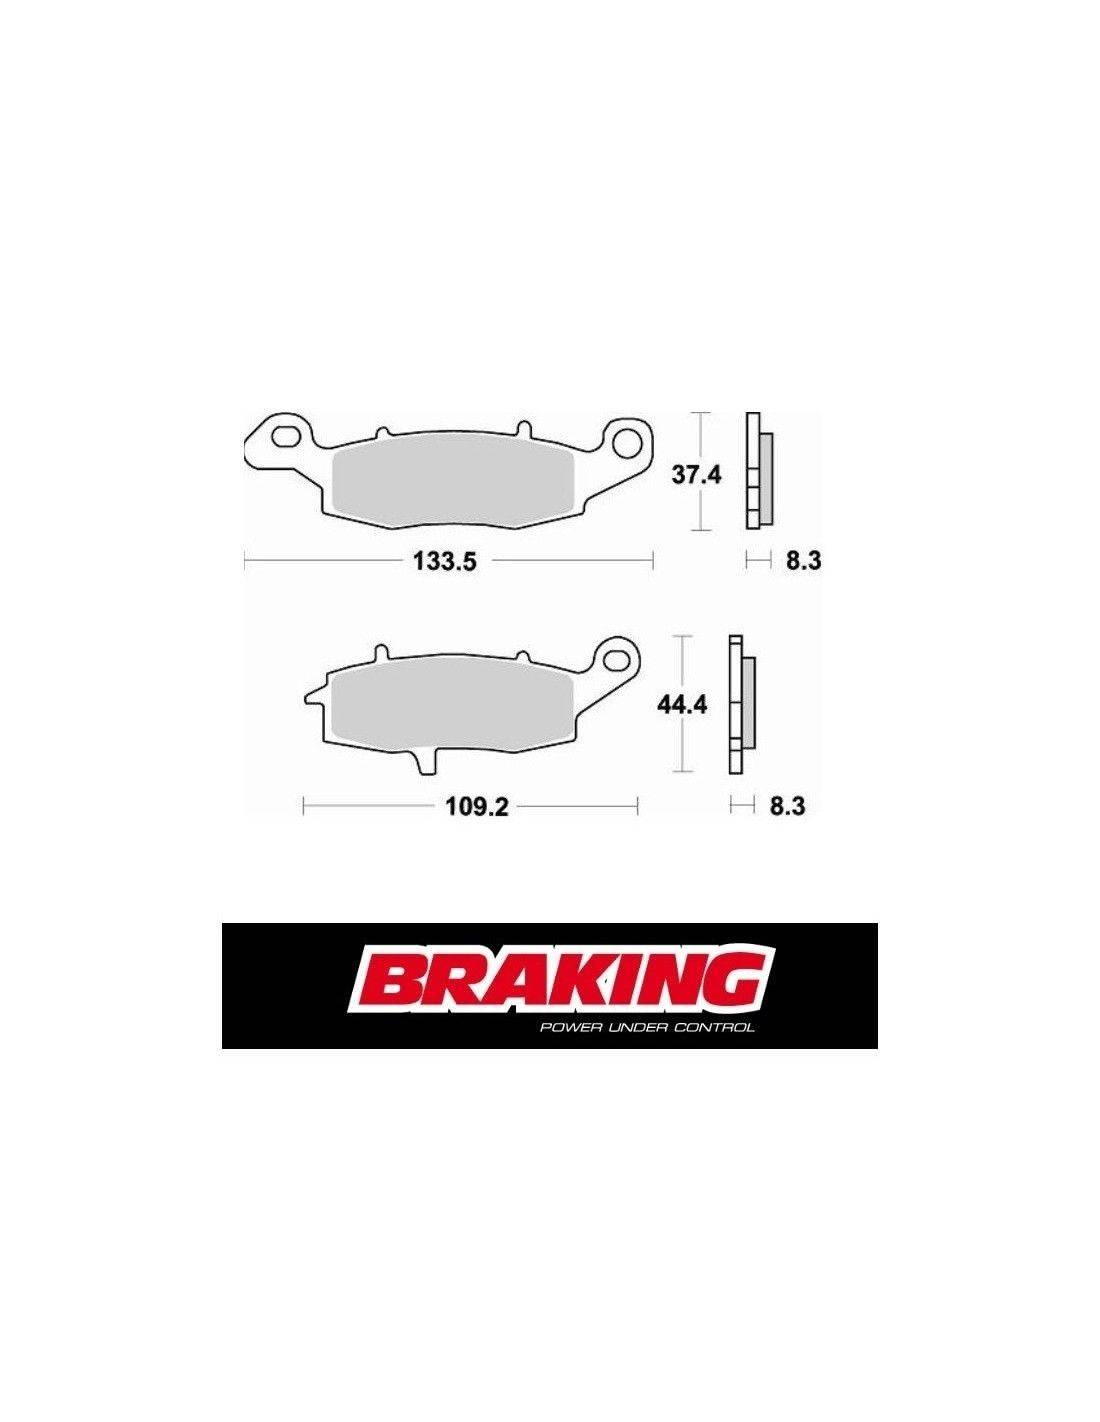 Braking motorcycles brake pads Suzuki VL 800 LC Intruder